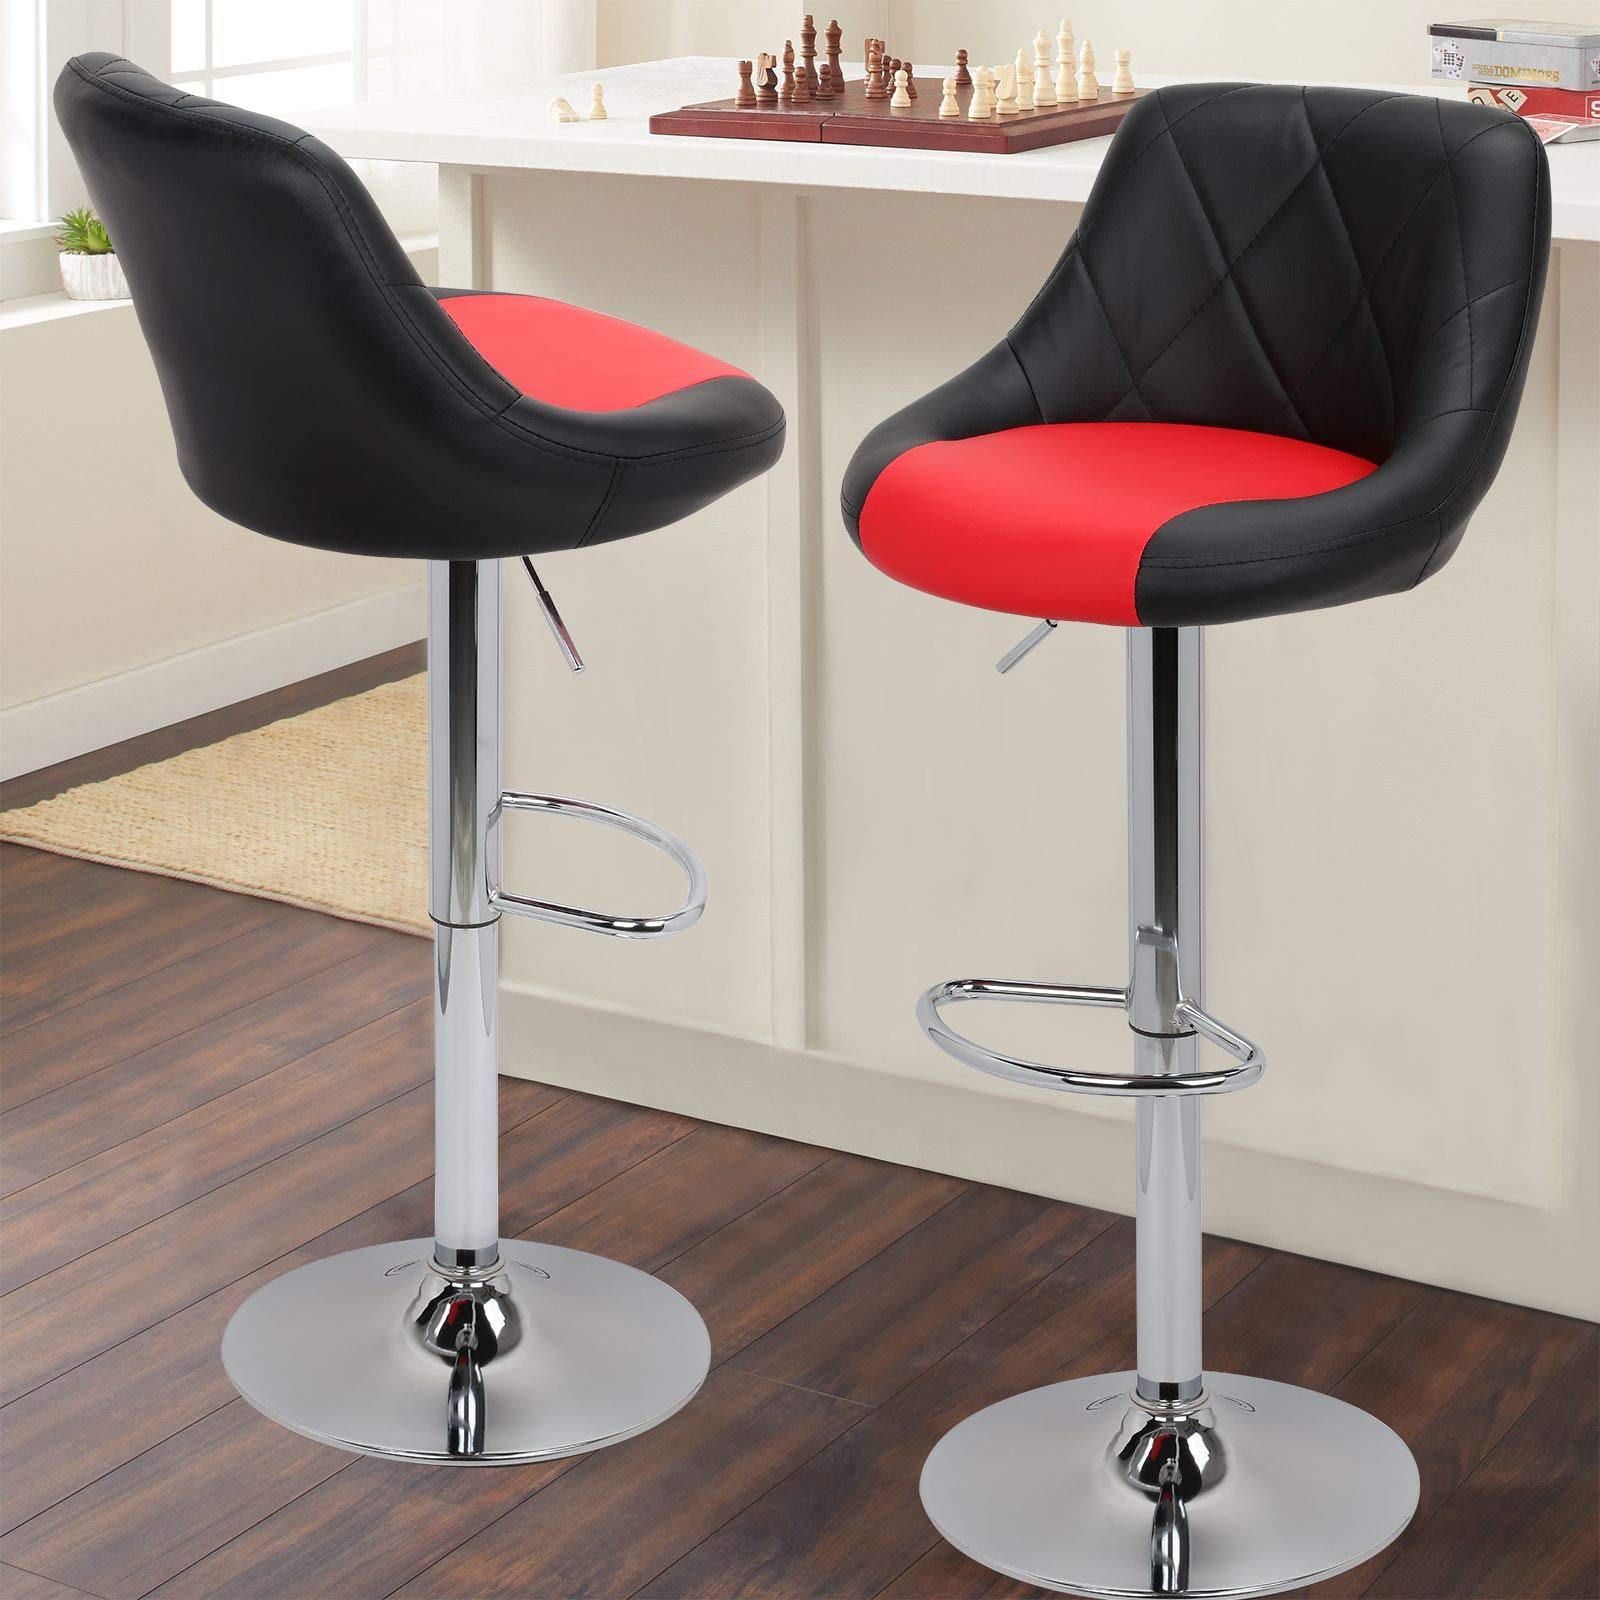 Magshion Mixed Color Model Stool Chair Dining Counter Bar Pub-Set of 2 (Black/Red) by Magshion